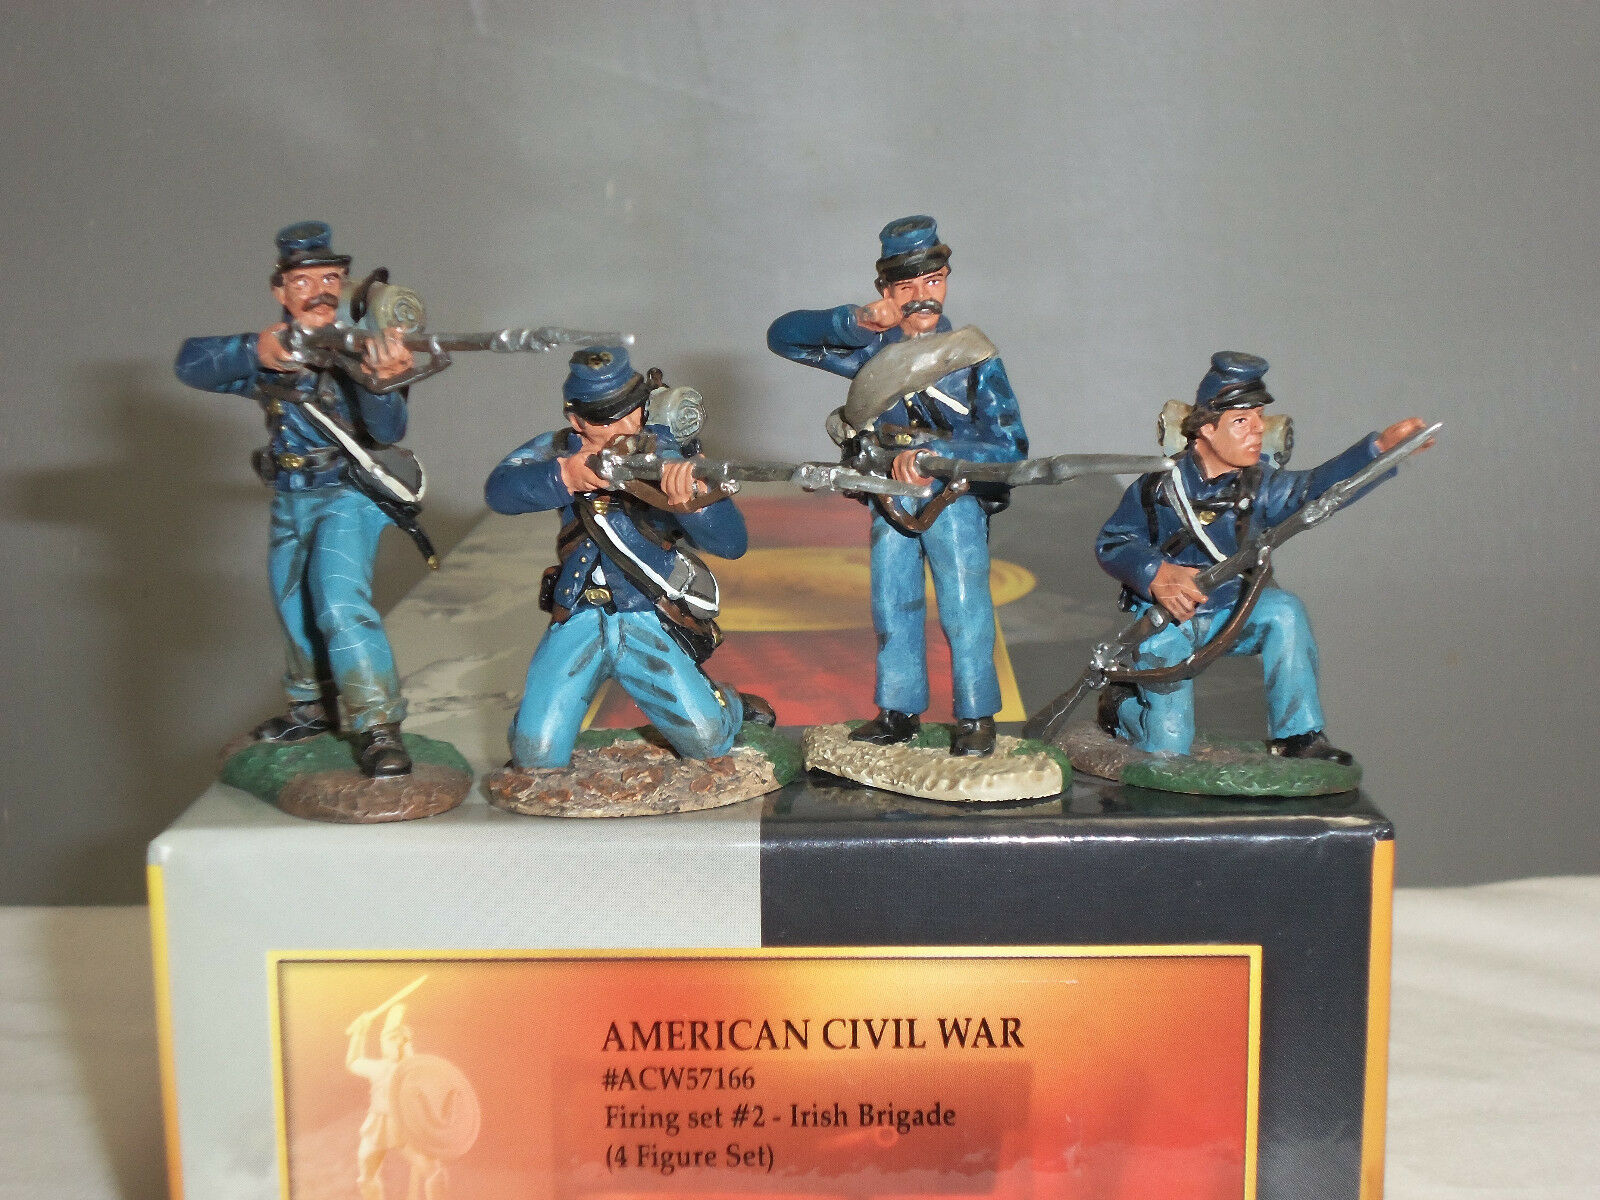 CONTE ACW57166 IRISH BRIGADE FIRING AMERICAN CIVIL WAR TOY SOLDIER FIGURE SET 2